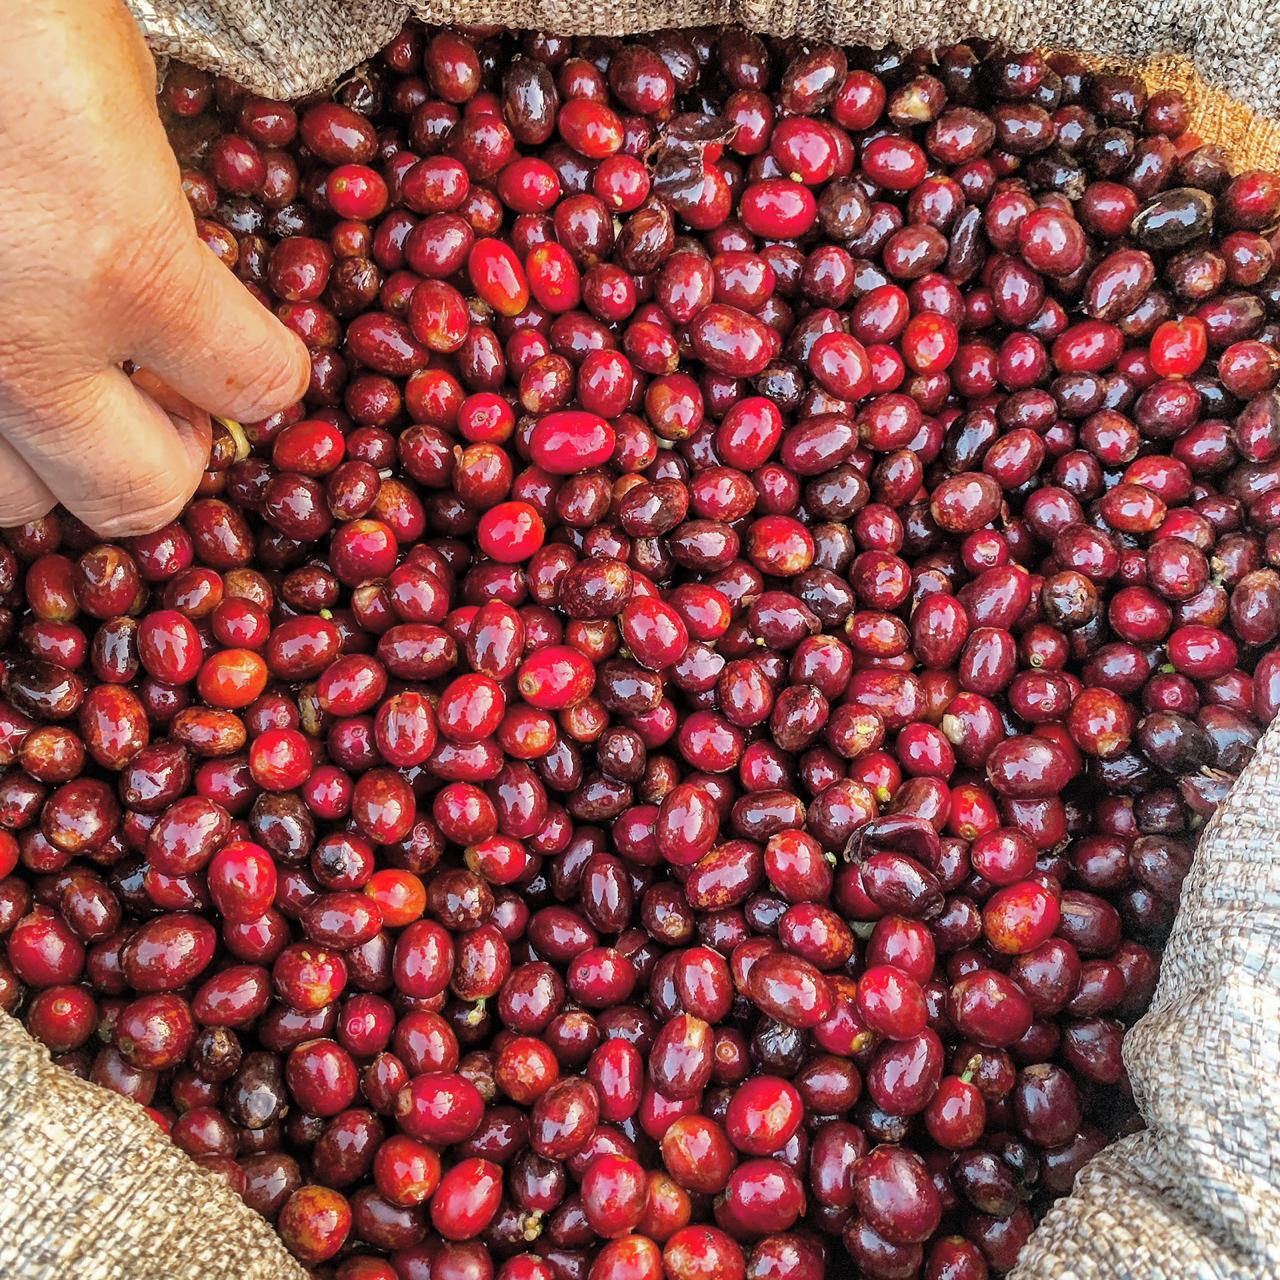 Ripe coffee cherries in a jute bag